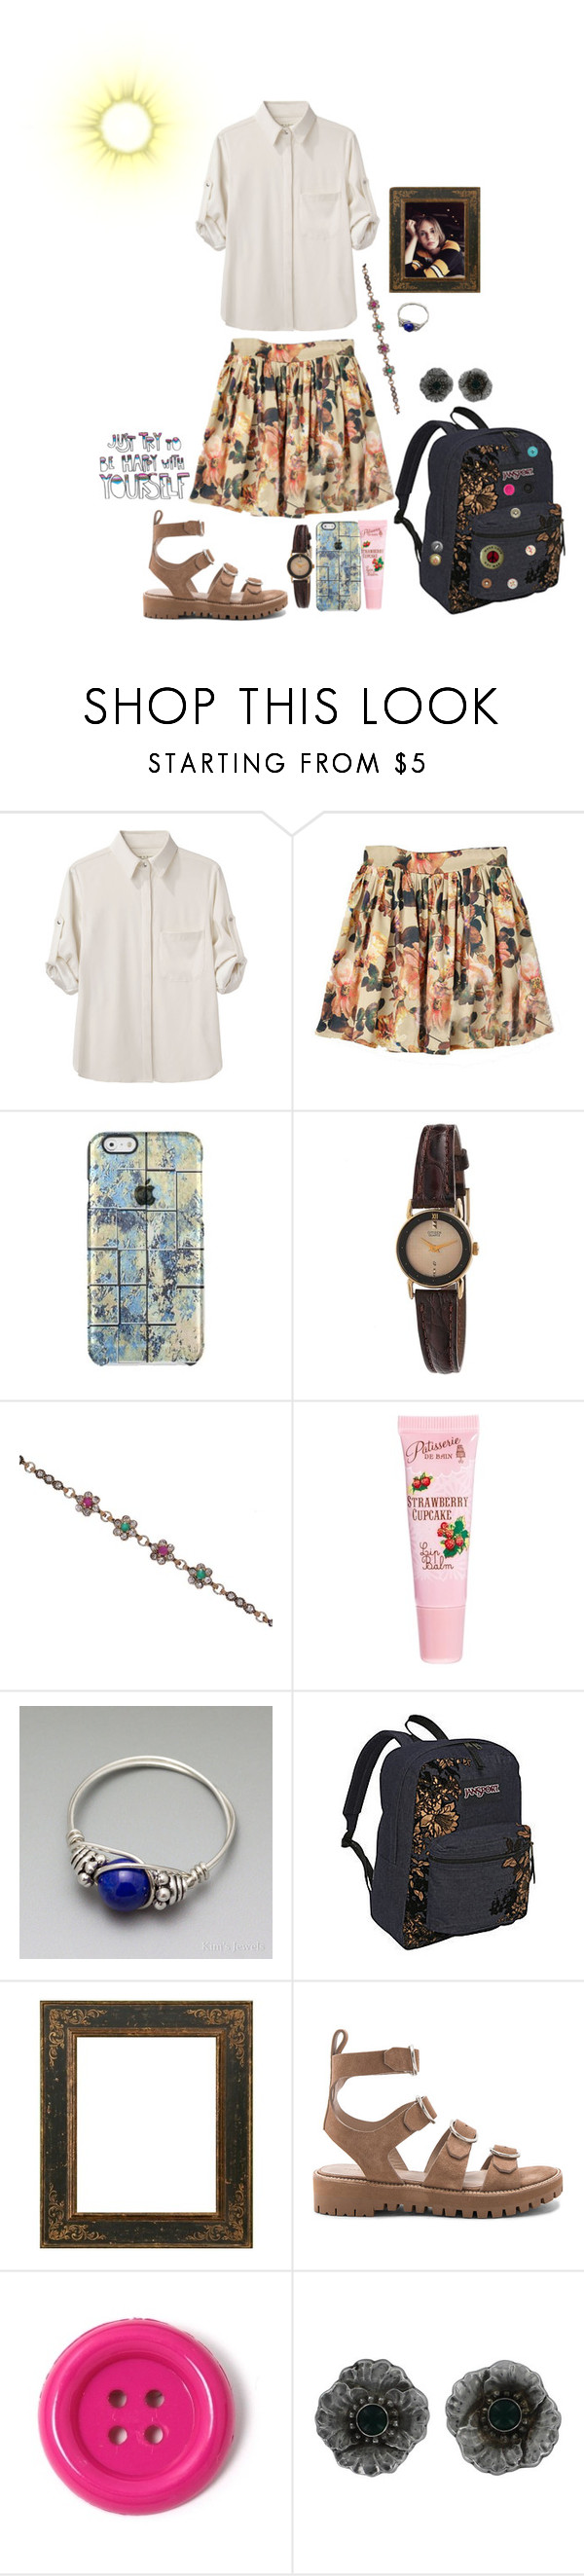 """Susan Teel 6"" by stockmon ❤ liked on Polyvore featuring rag & bone, American Apparel, ASOS, Lazuli, JanSport, AllSaints, Laurafallulah, Georg Jensen, 2017 and Stockmonset"